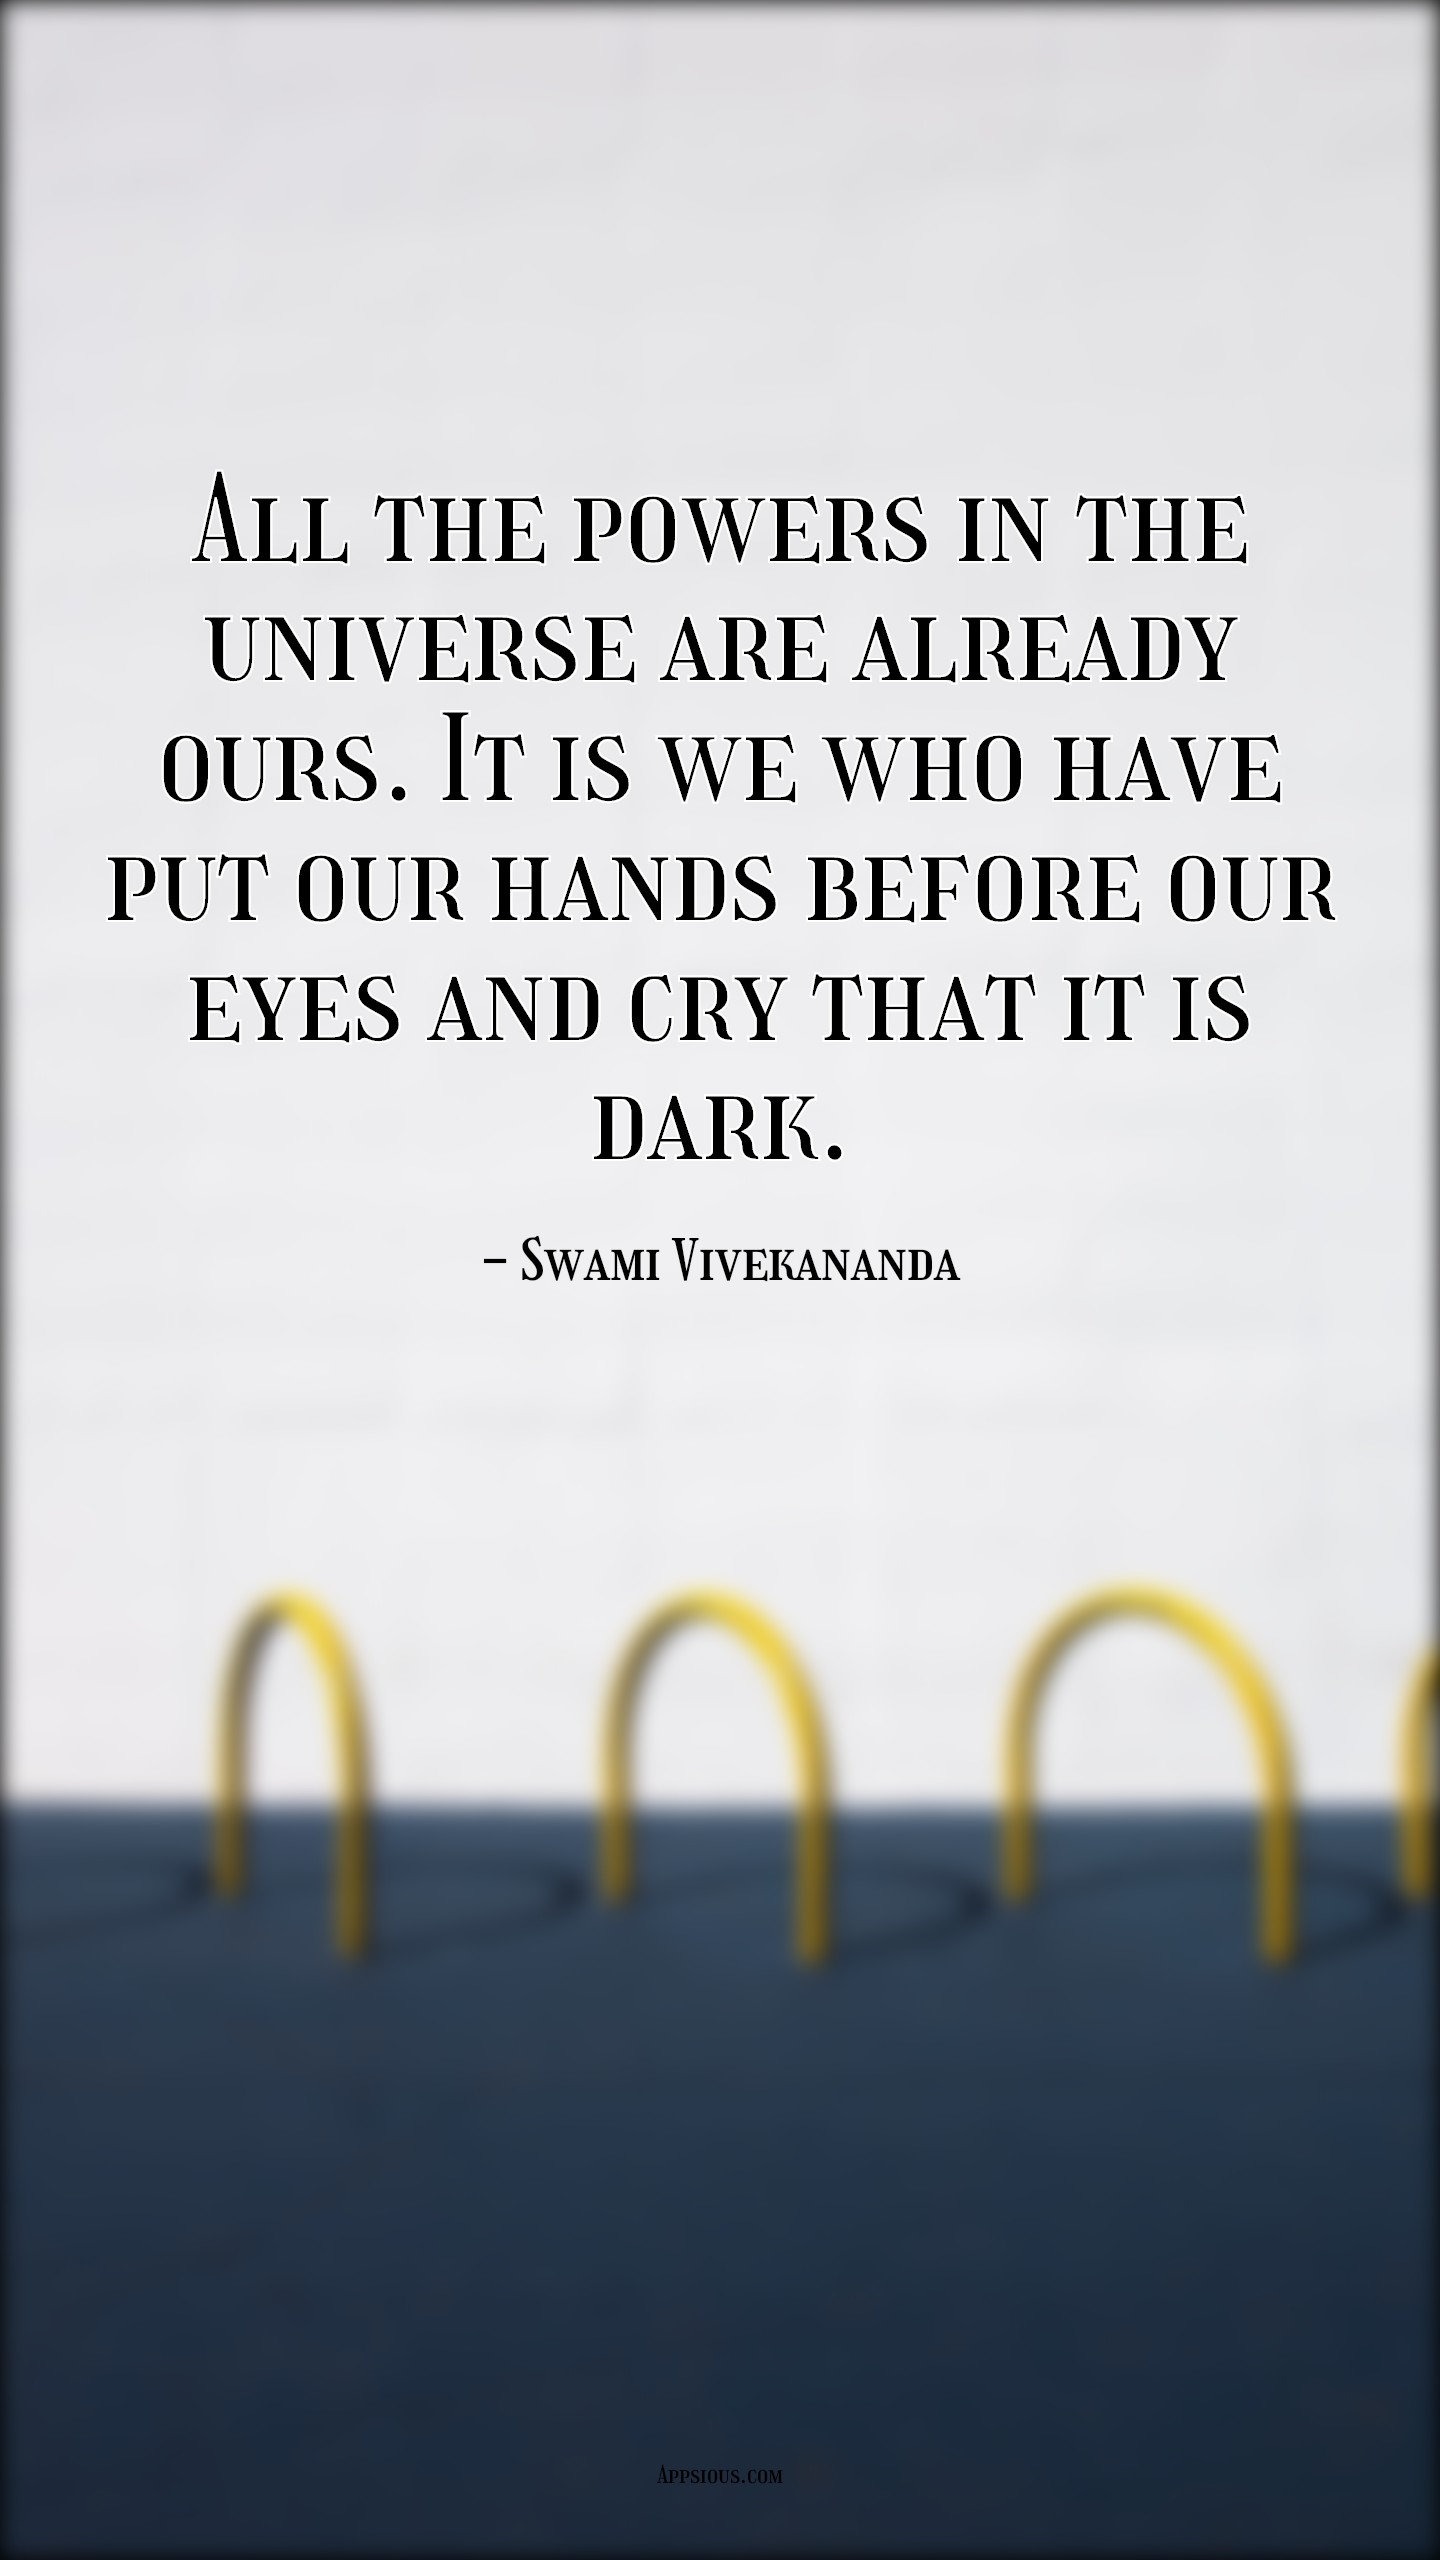 All the powers in the universe are already ours. It is we who have put our hands before our eyes and cry that it is dark.